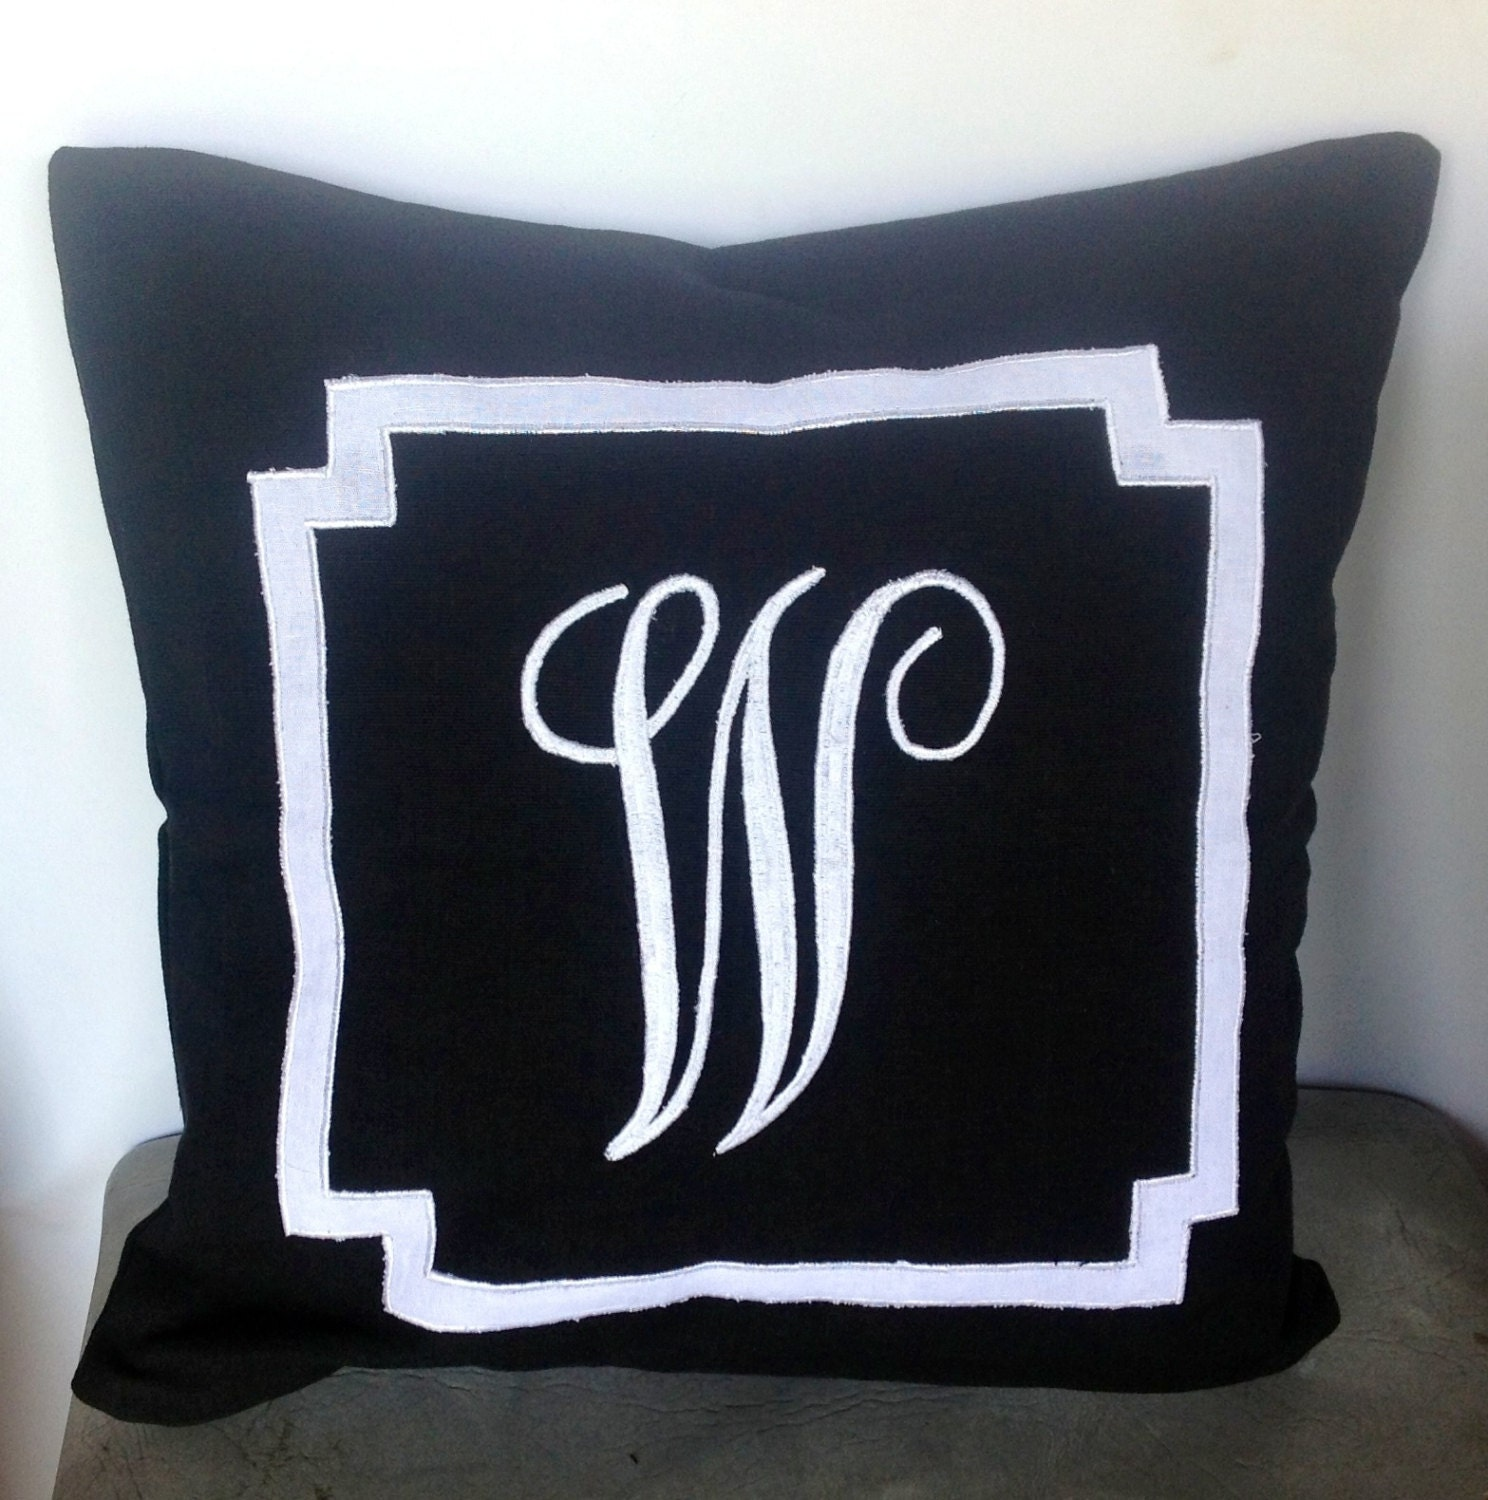 Monogrammed Throw Pillow Covers : Monogrammed black embroidered border pillow cover black throw